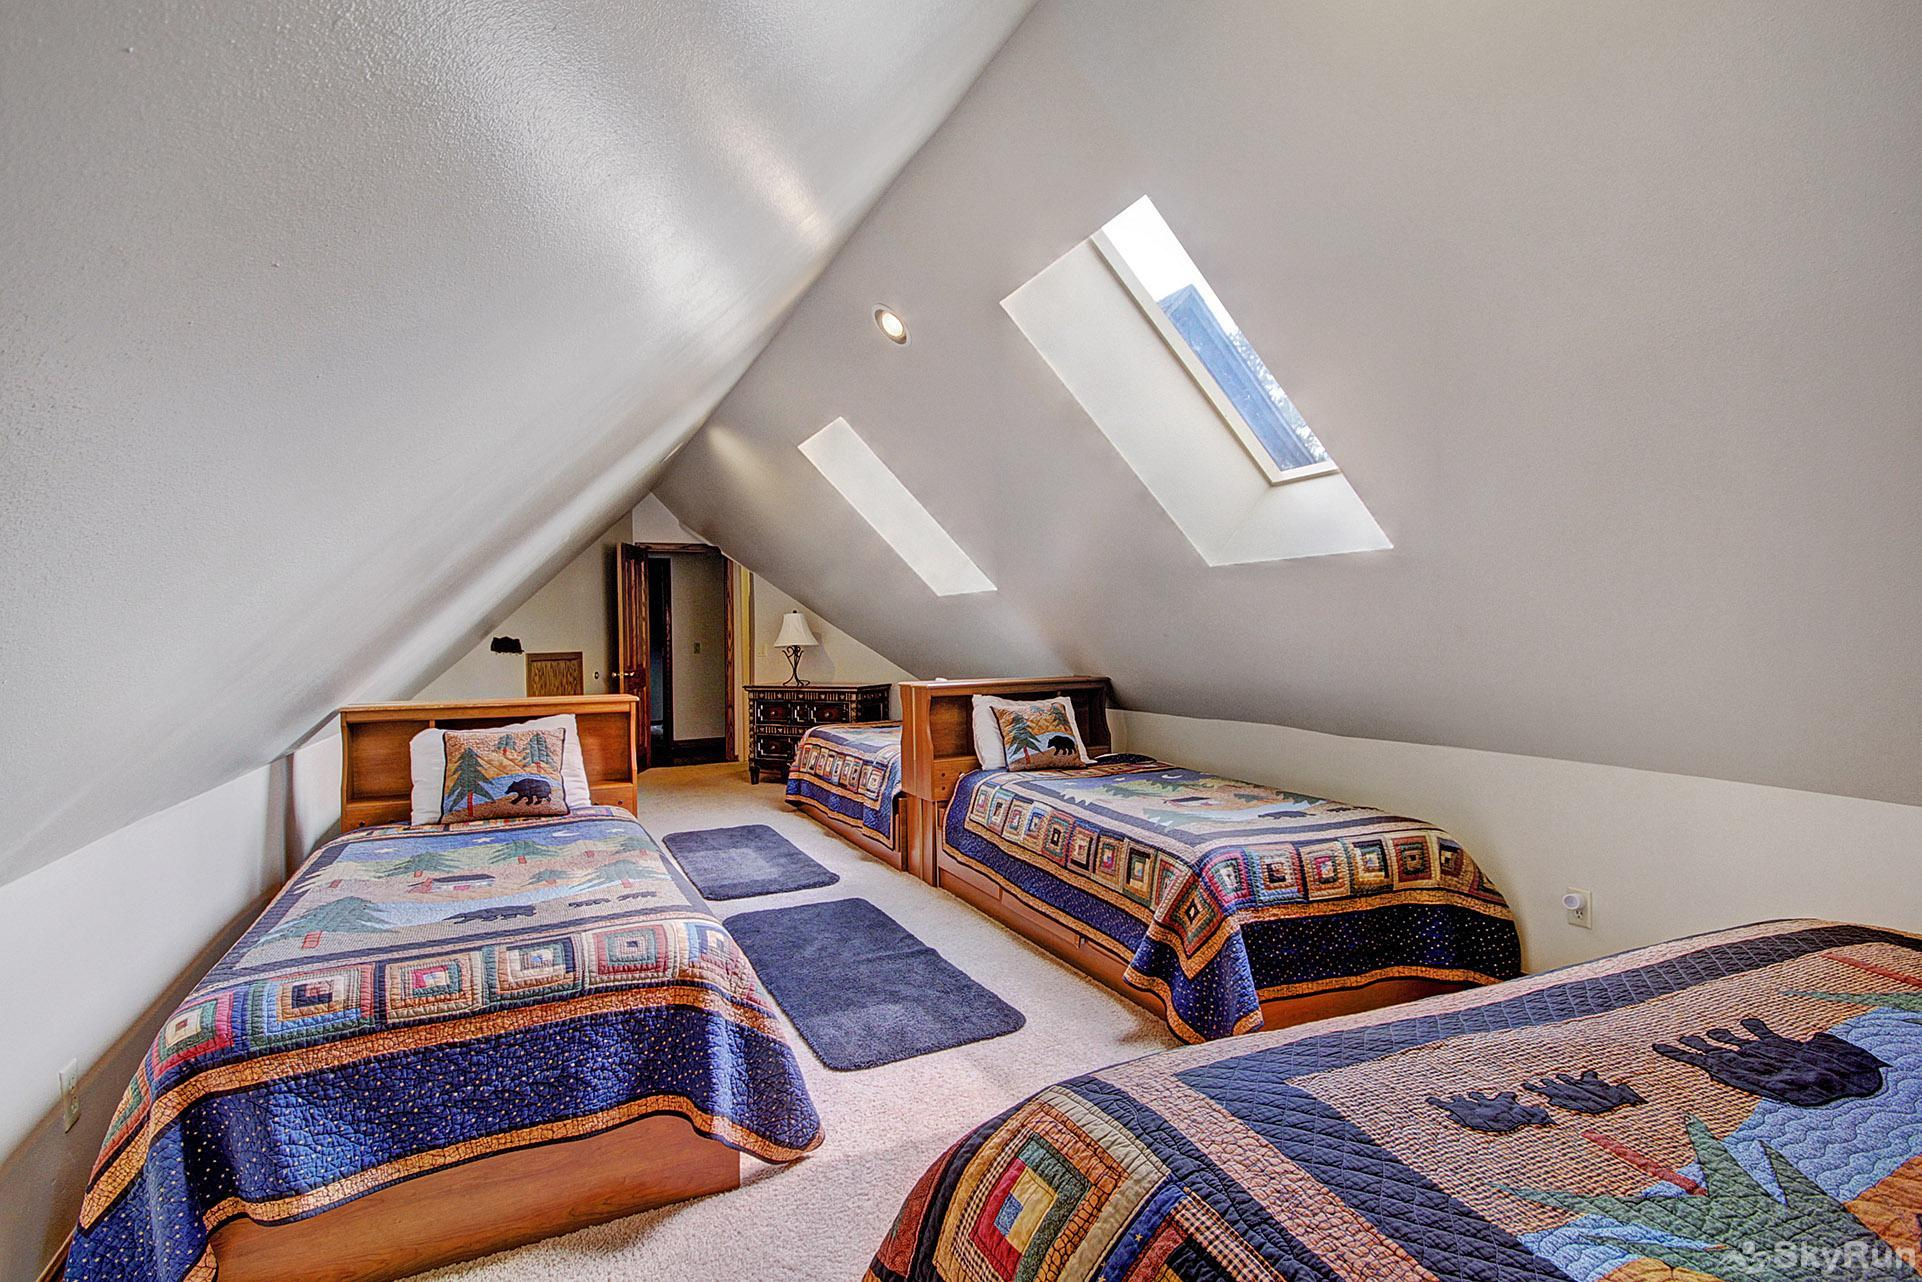 Gold King Lodge Bedroom with 5 beds